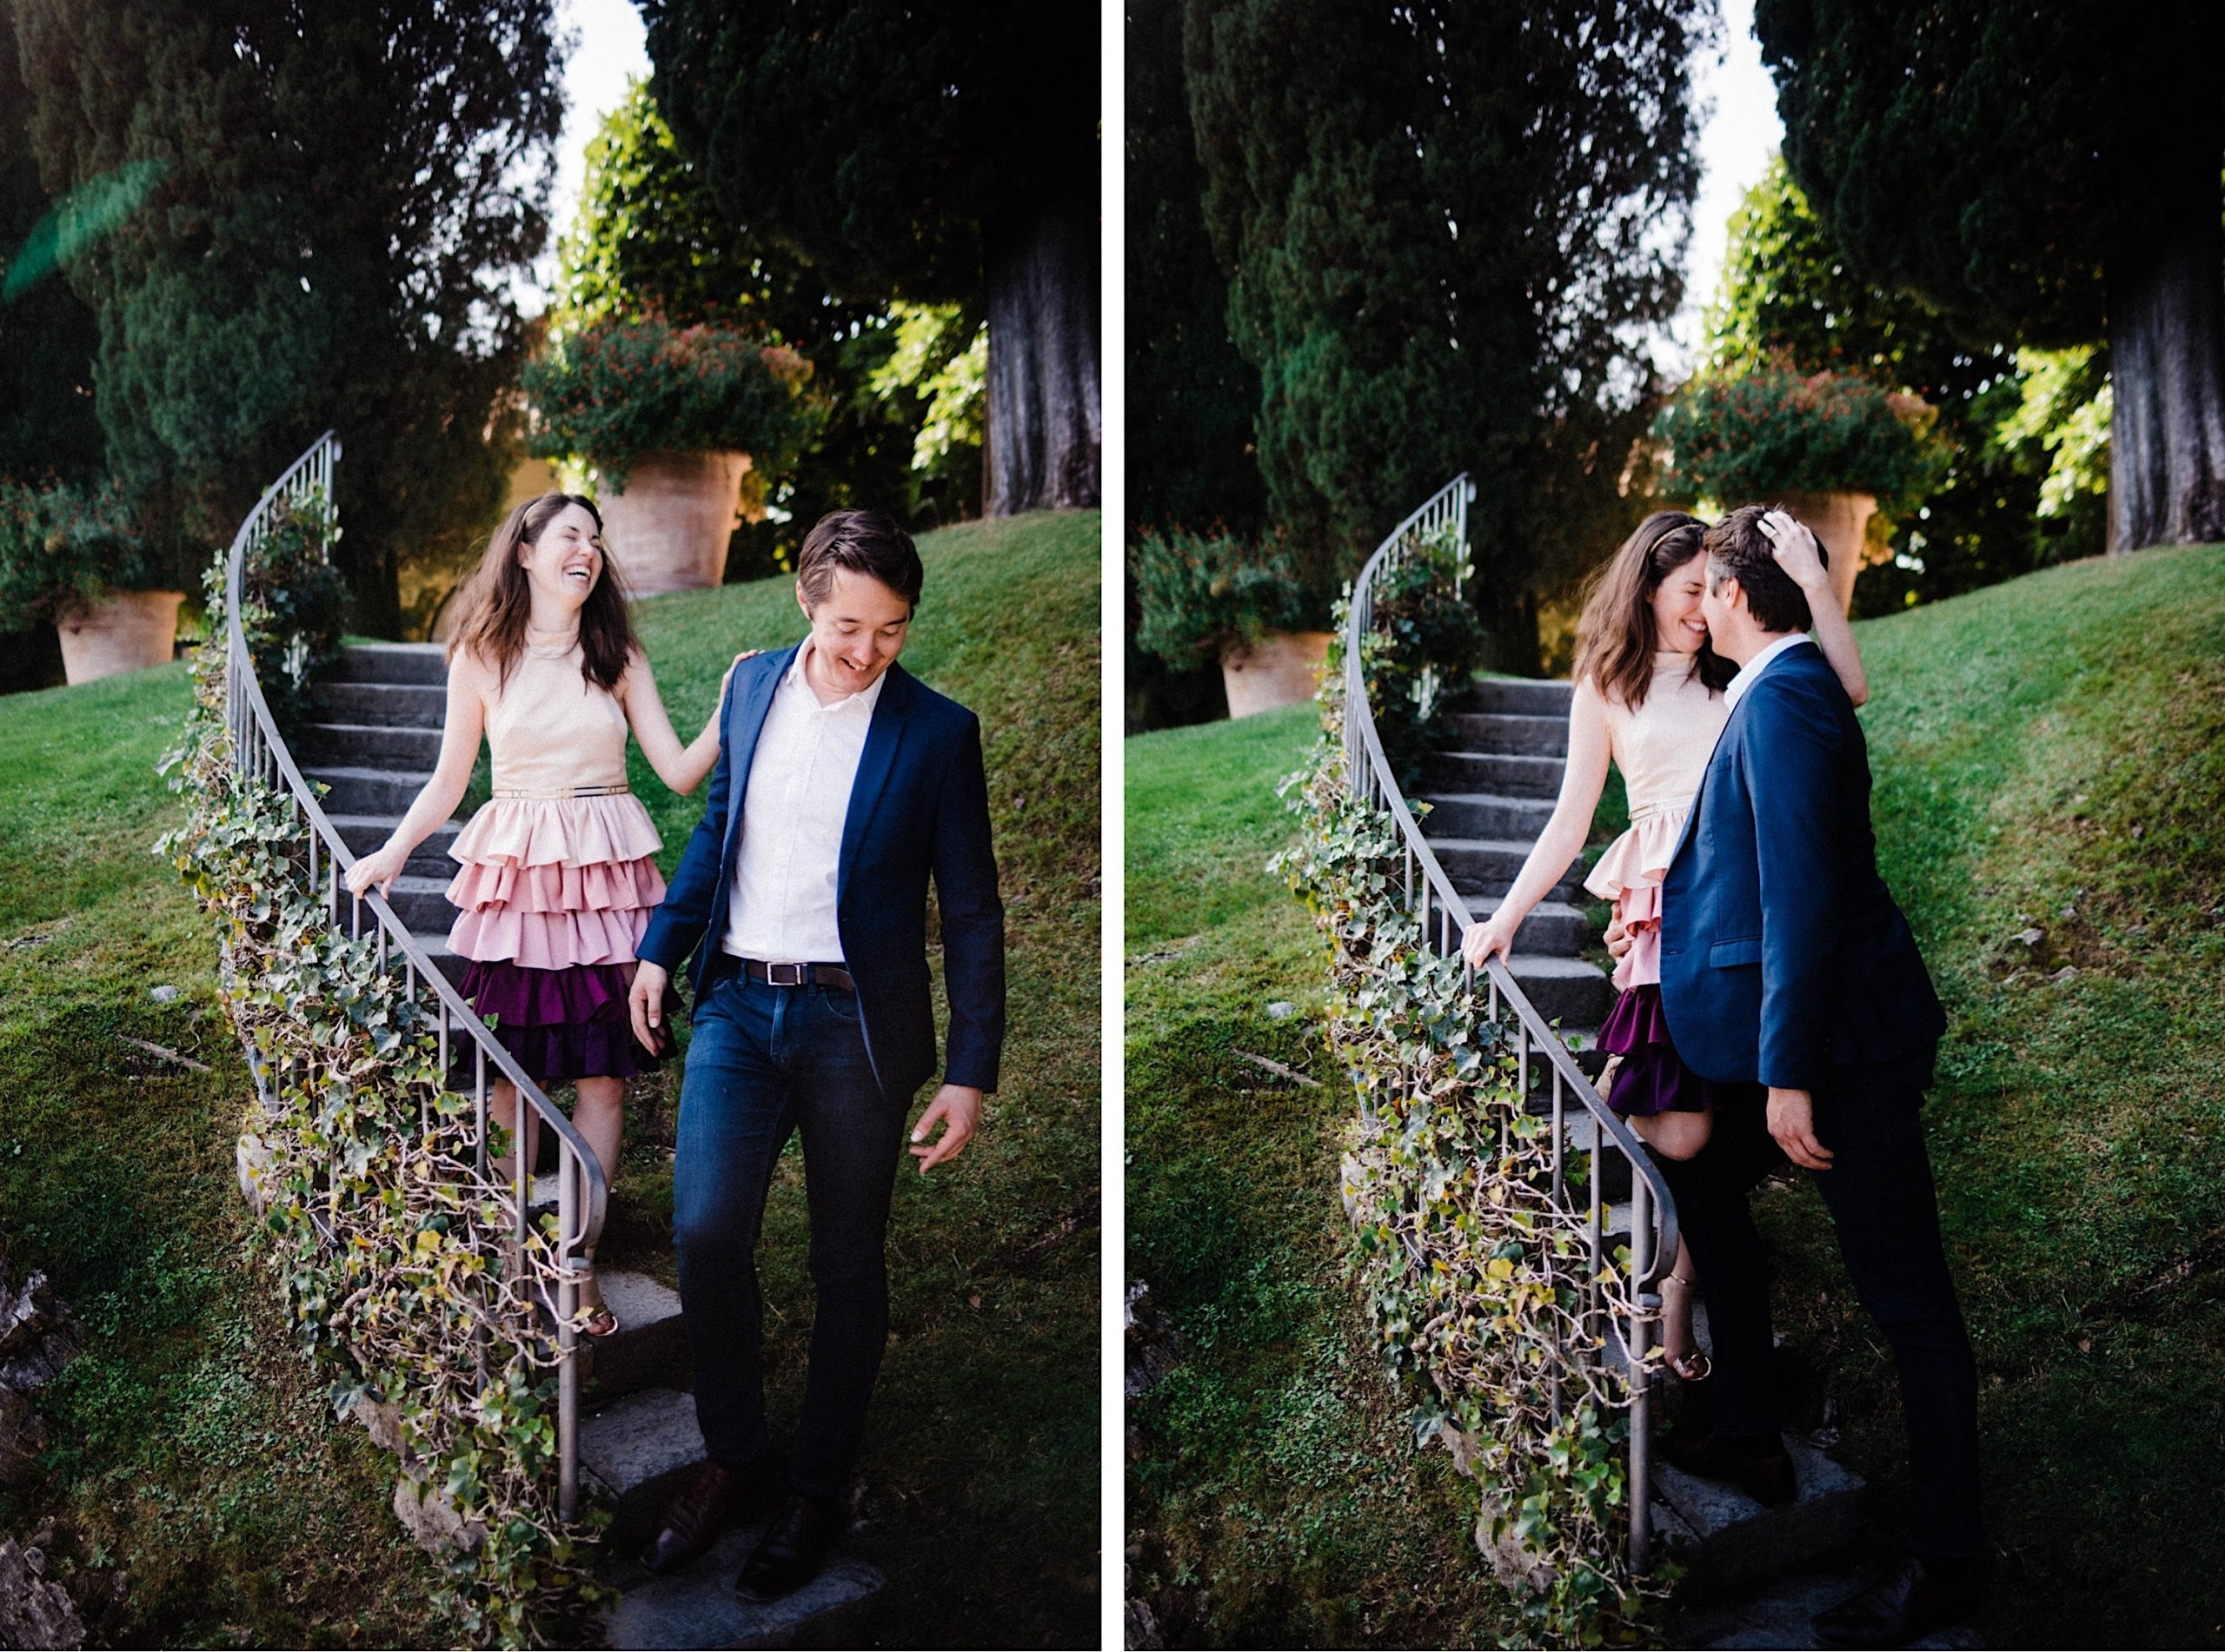 Two portrait photos of a couple walking down stairs with vintage iron balustrades. The couple laugh together in one photo and share a kiss in the other.